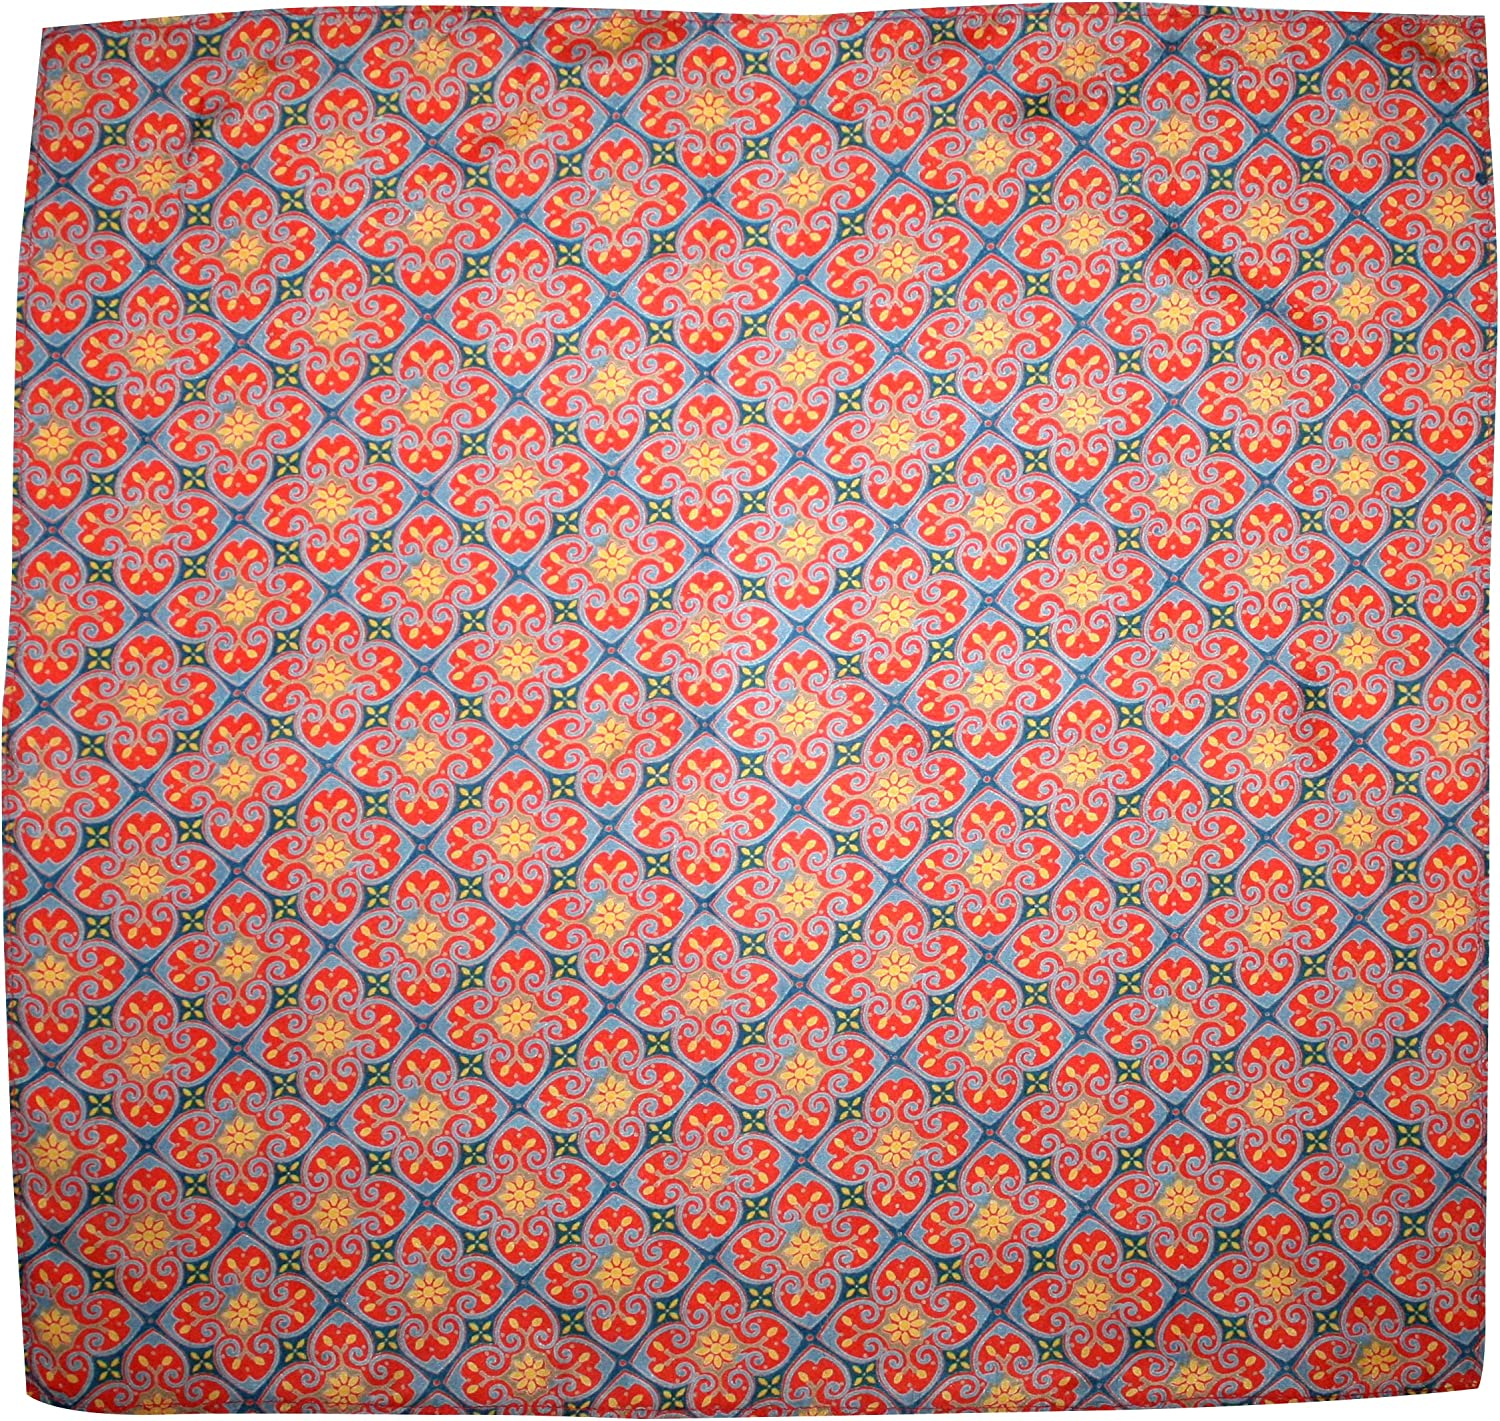 GOLD CATHEDRAL Silk Handkerchief - Full-Sized 16